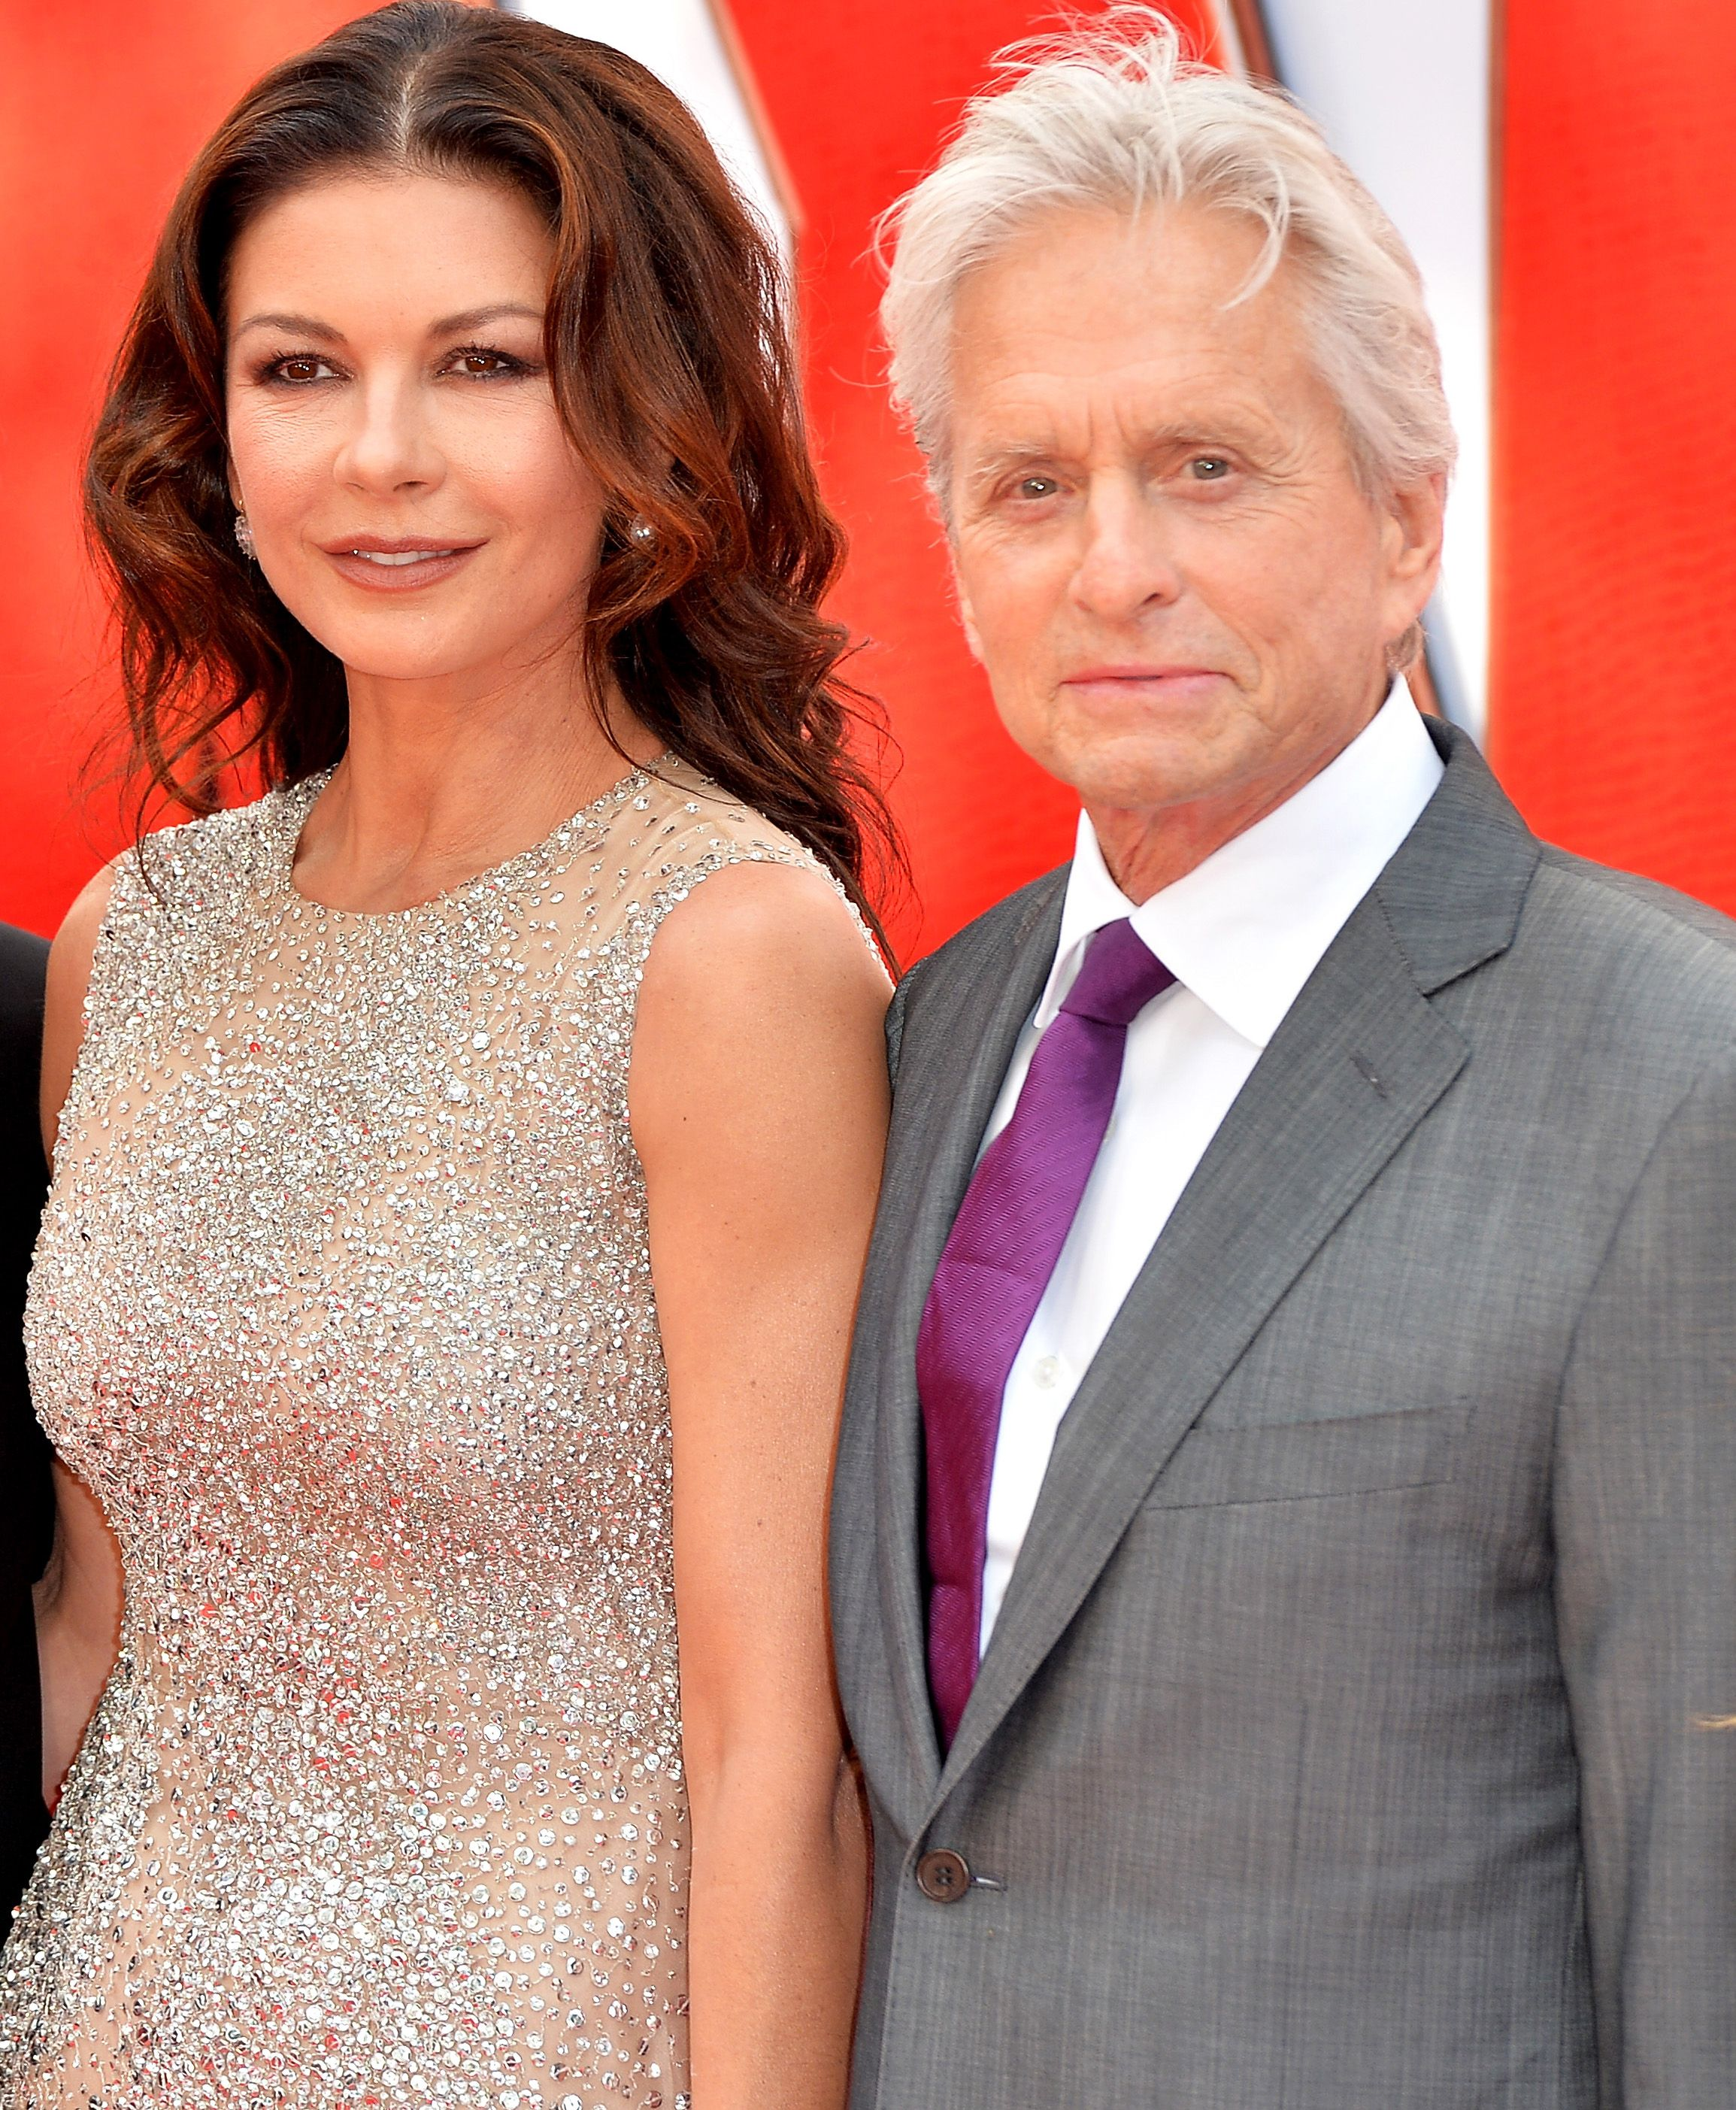 Catherine Zeta-Jones Gives Husband Michael Douglas A Sweet